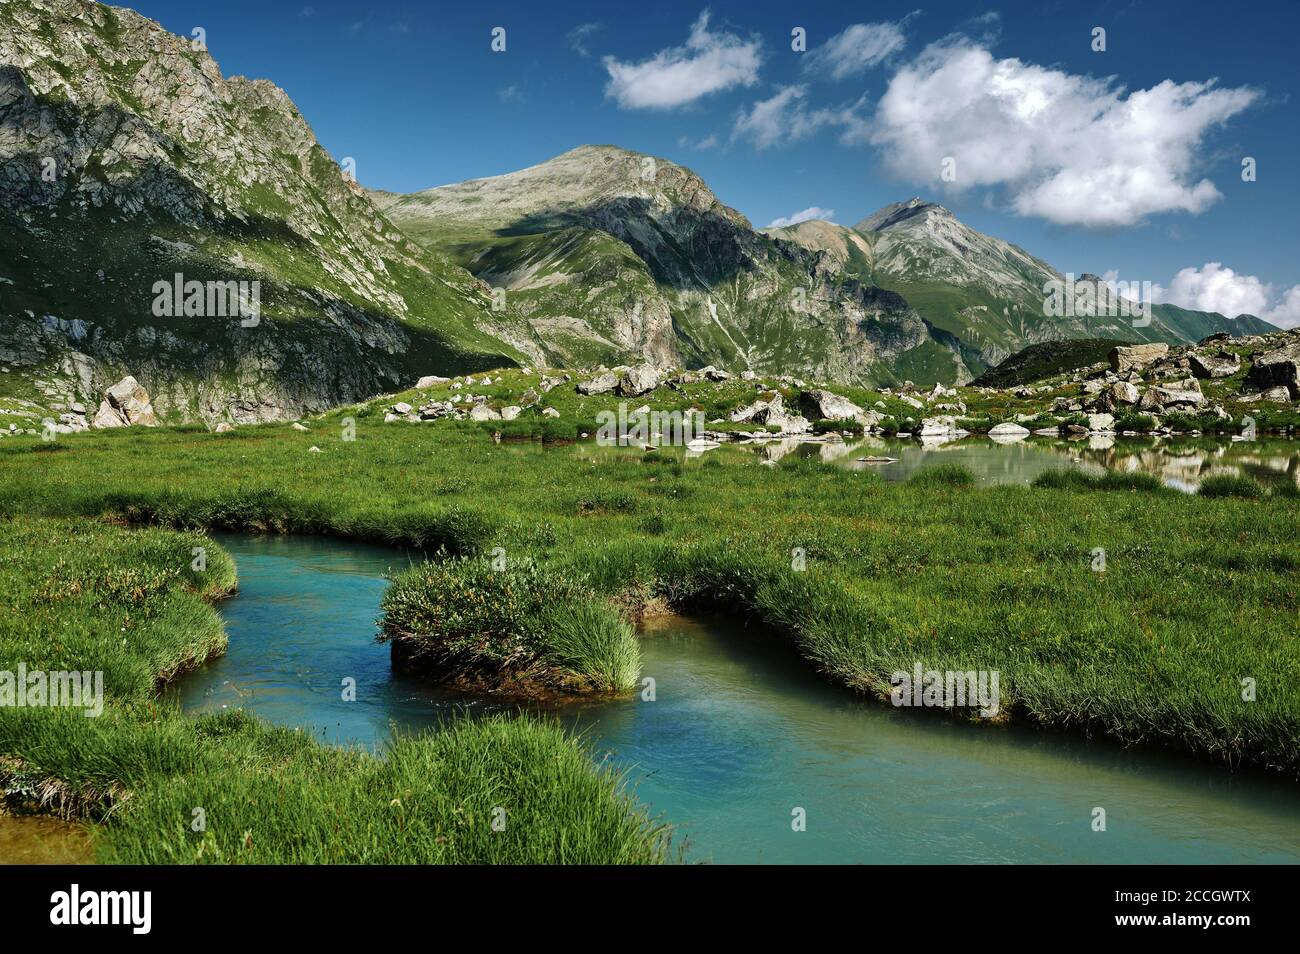 Majestic mountains landscape with blue deep river in green grassy valley. Beautiful wild nature Stock Photo